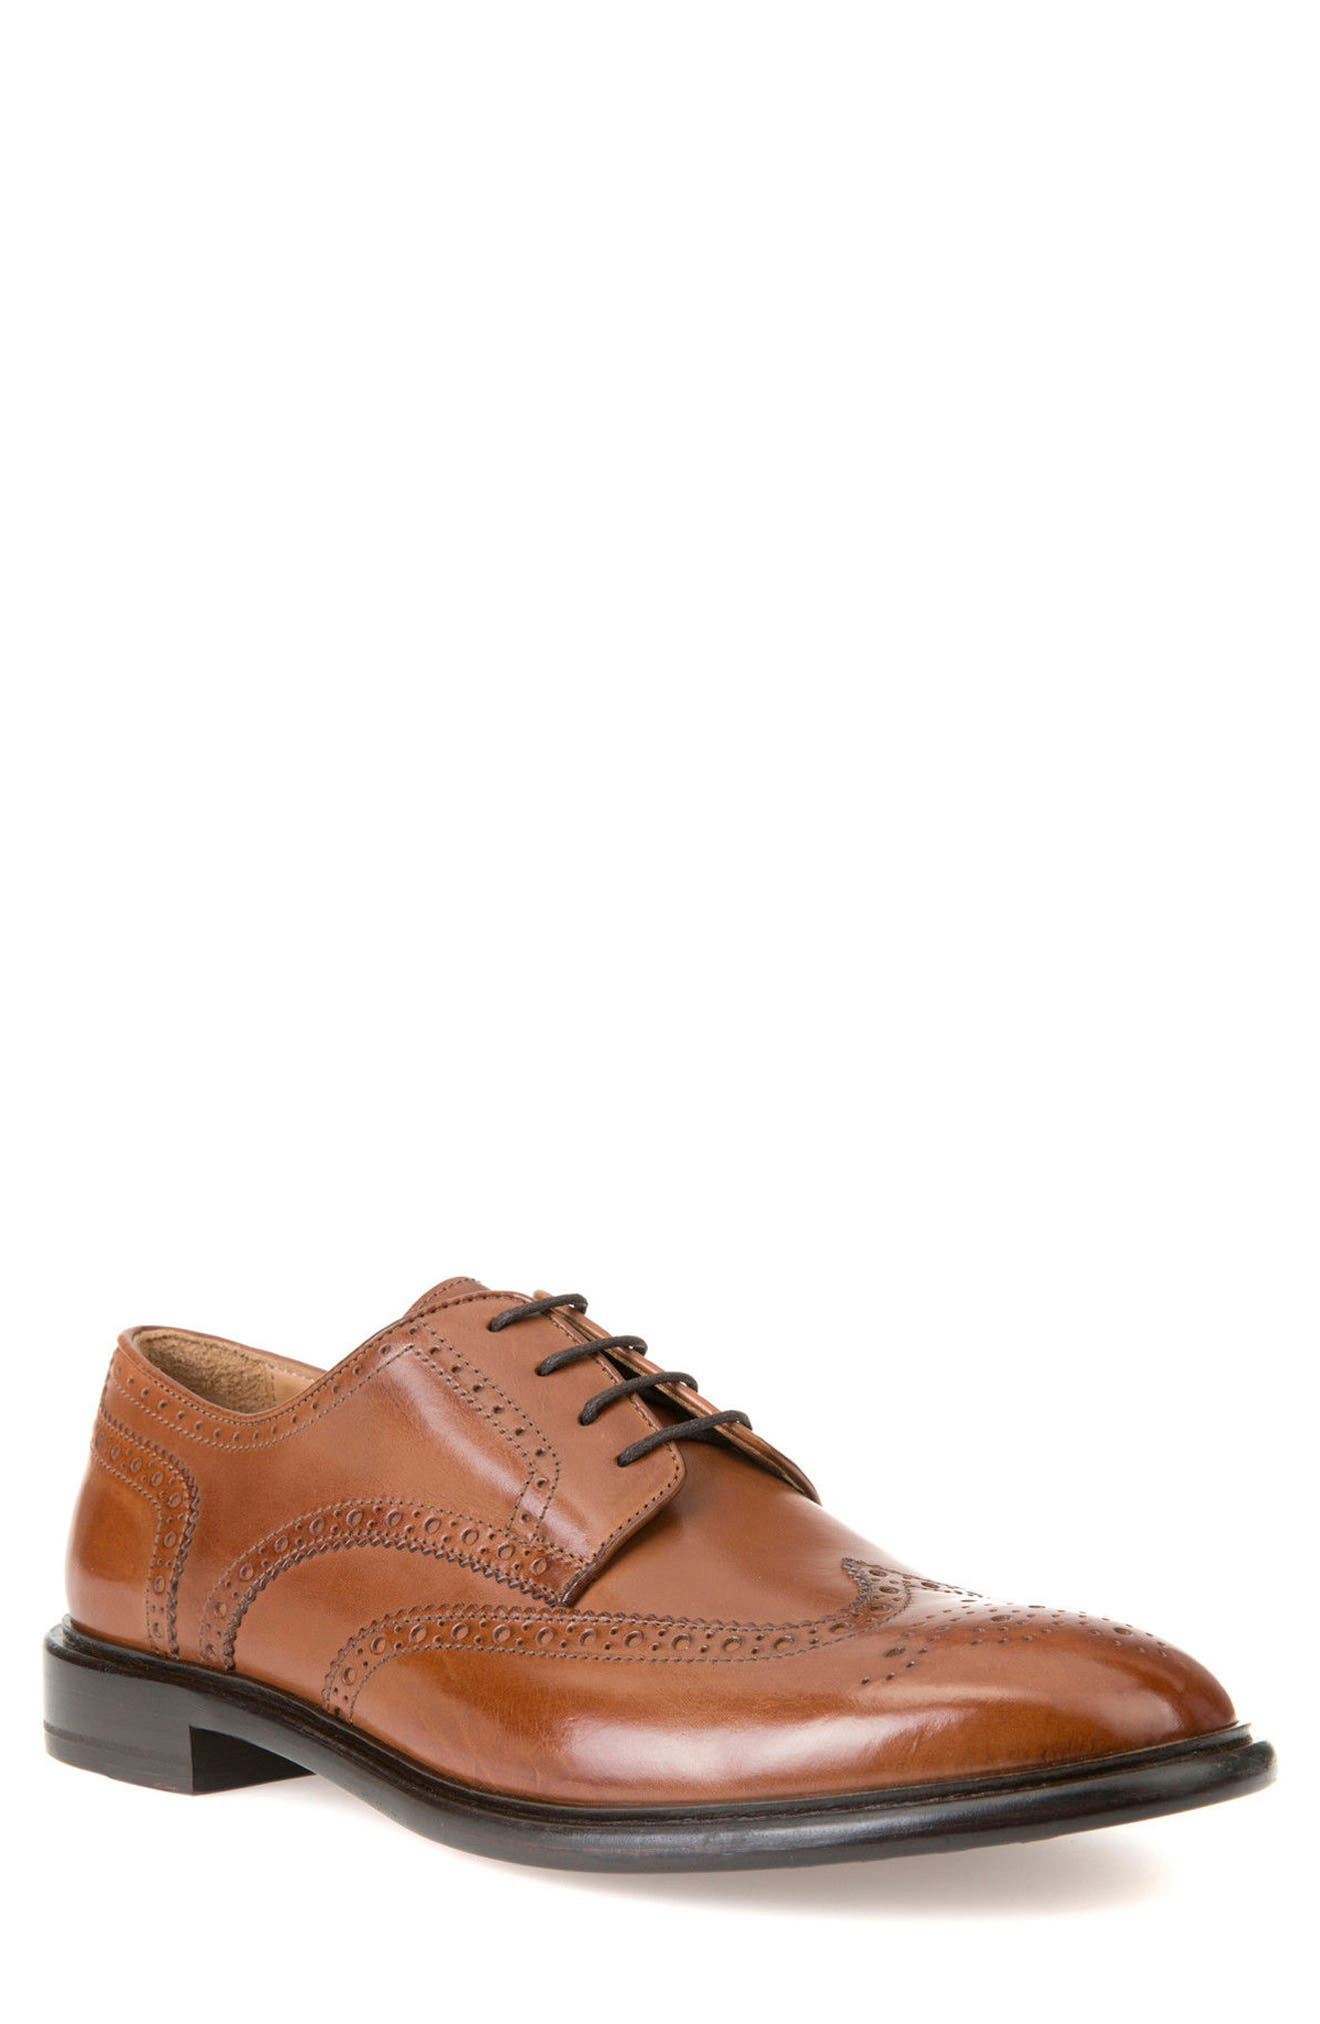 Guildford 4 Wingtip,                             Main thumbnail 1, color,                             204